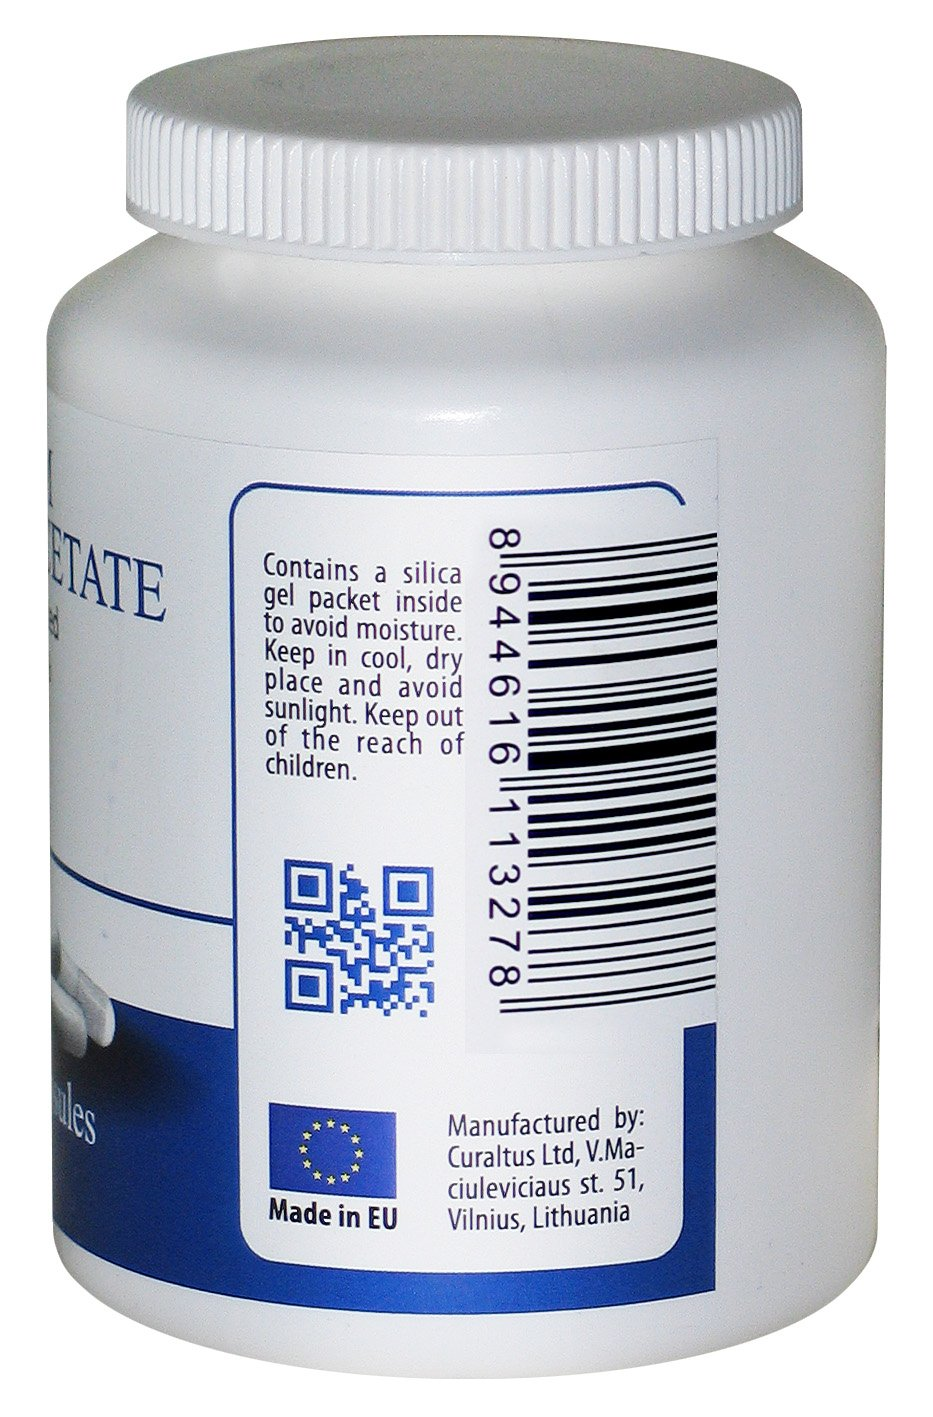 DCA - Sodium Dichloroacetate 333mg - Best Purity >99.9%, Made in Europe, by DCA-LAB, Certificate of Analysis Included, Tested in a Certified Laboratory, 180 Capsules